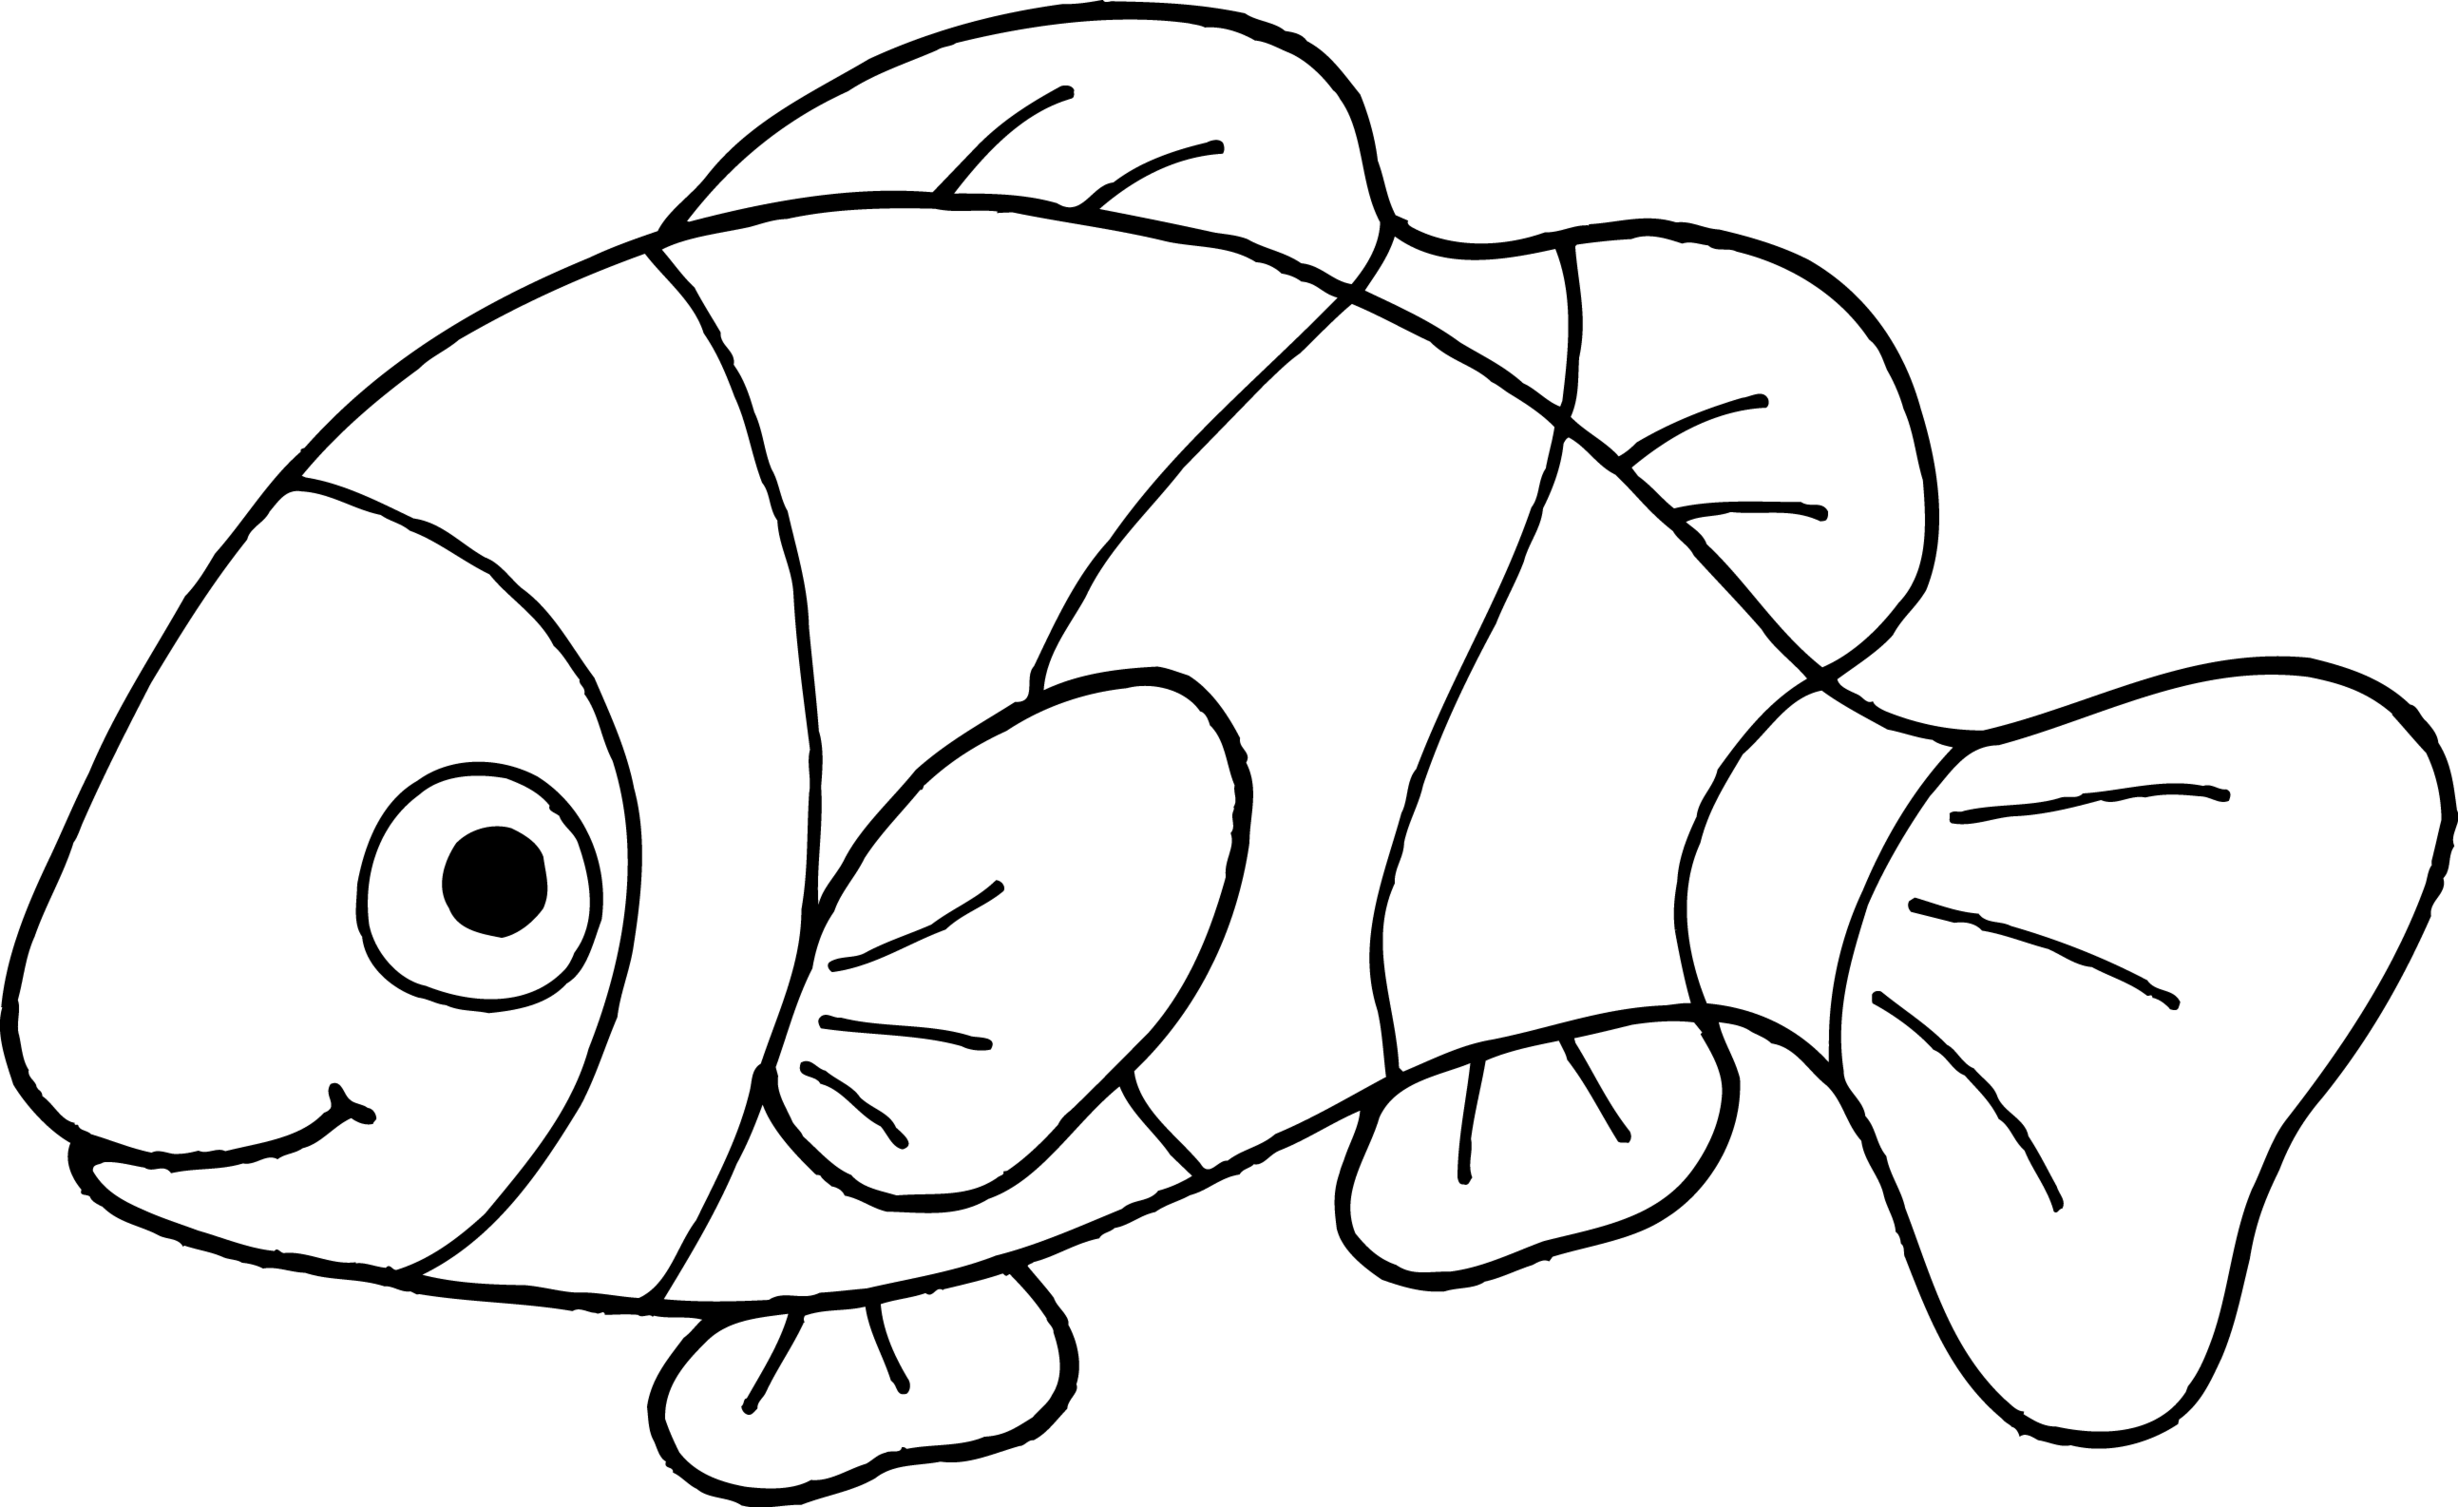 Drawing nemo line. Collection of fish